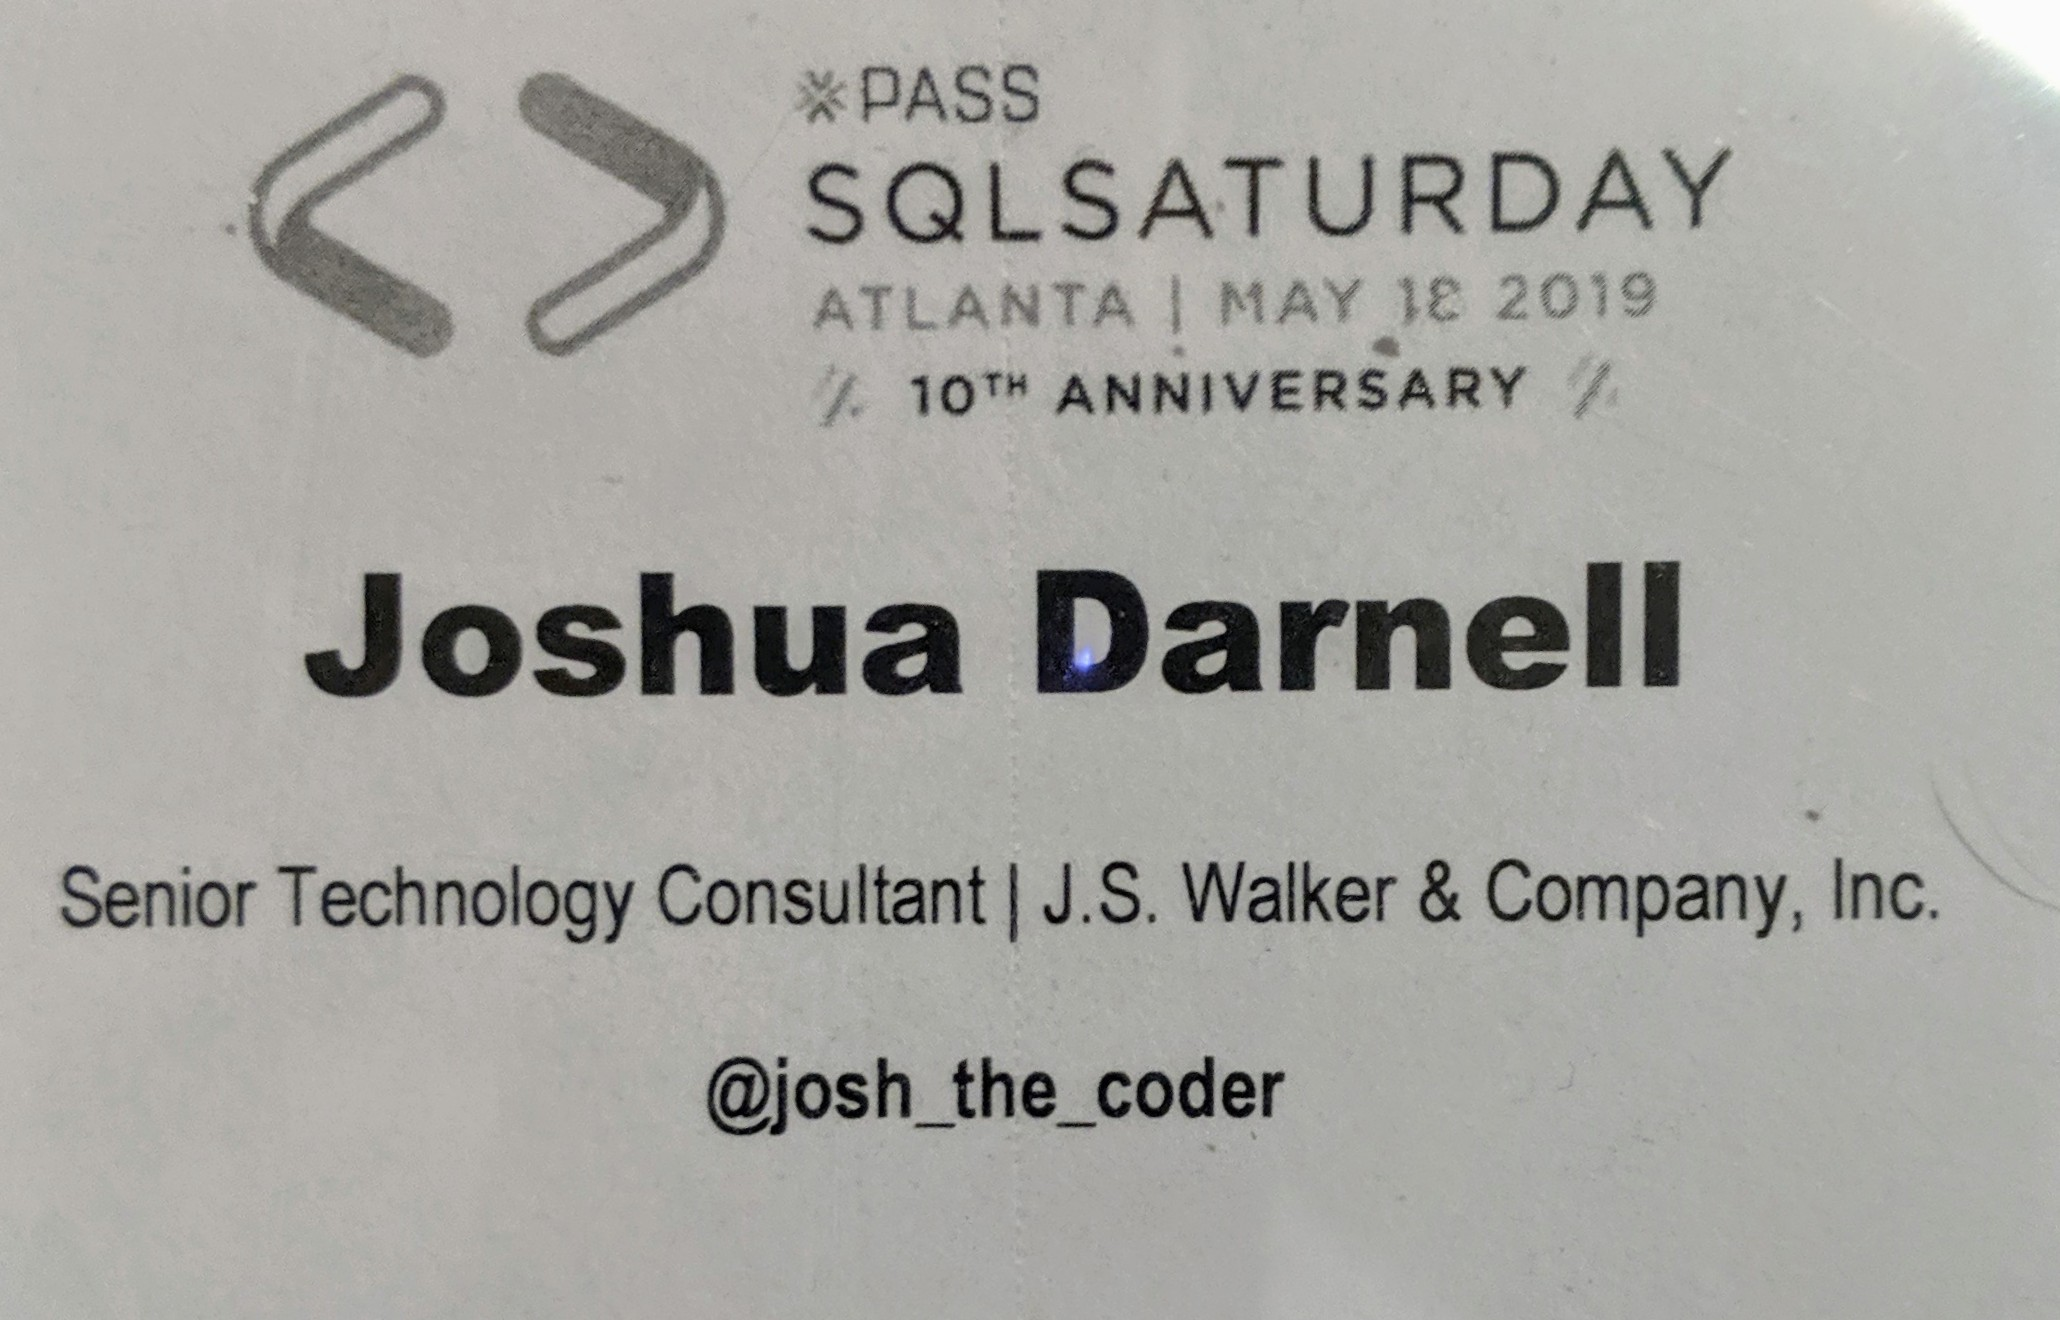 Photo of attendee badge and lanyard